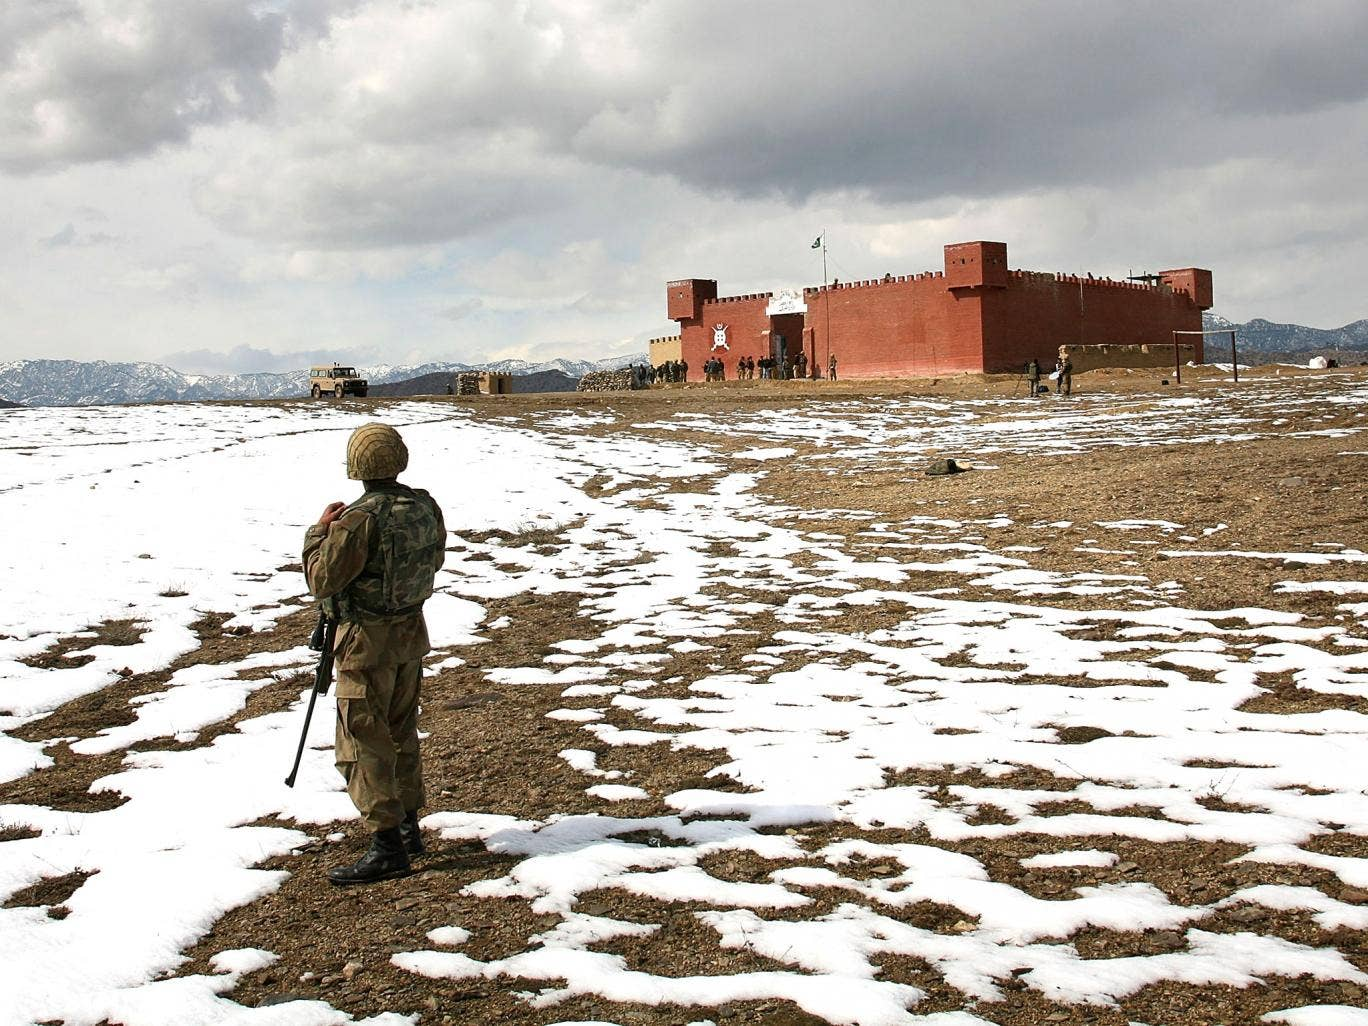 'The world's most dangerous place': a North Waziristan border outpost in 2007. The army is gearing up to retake the region which is a hotbed of militancy and where the Pakistani Taliban are based